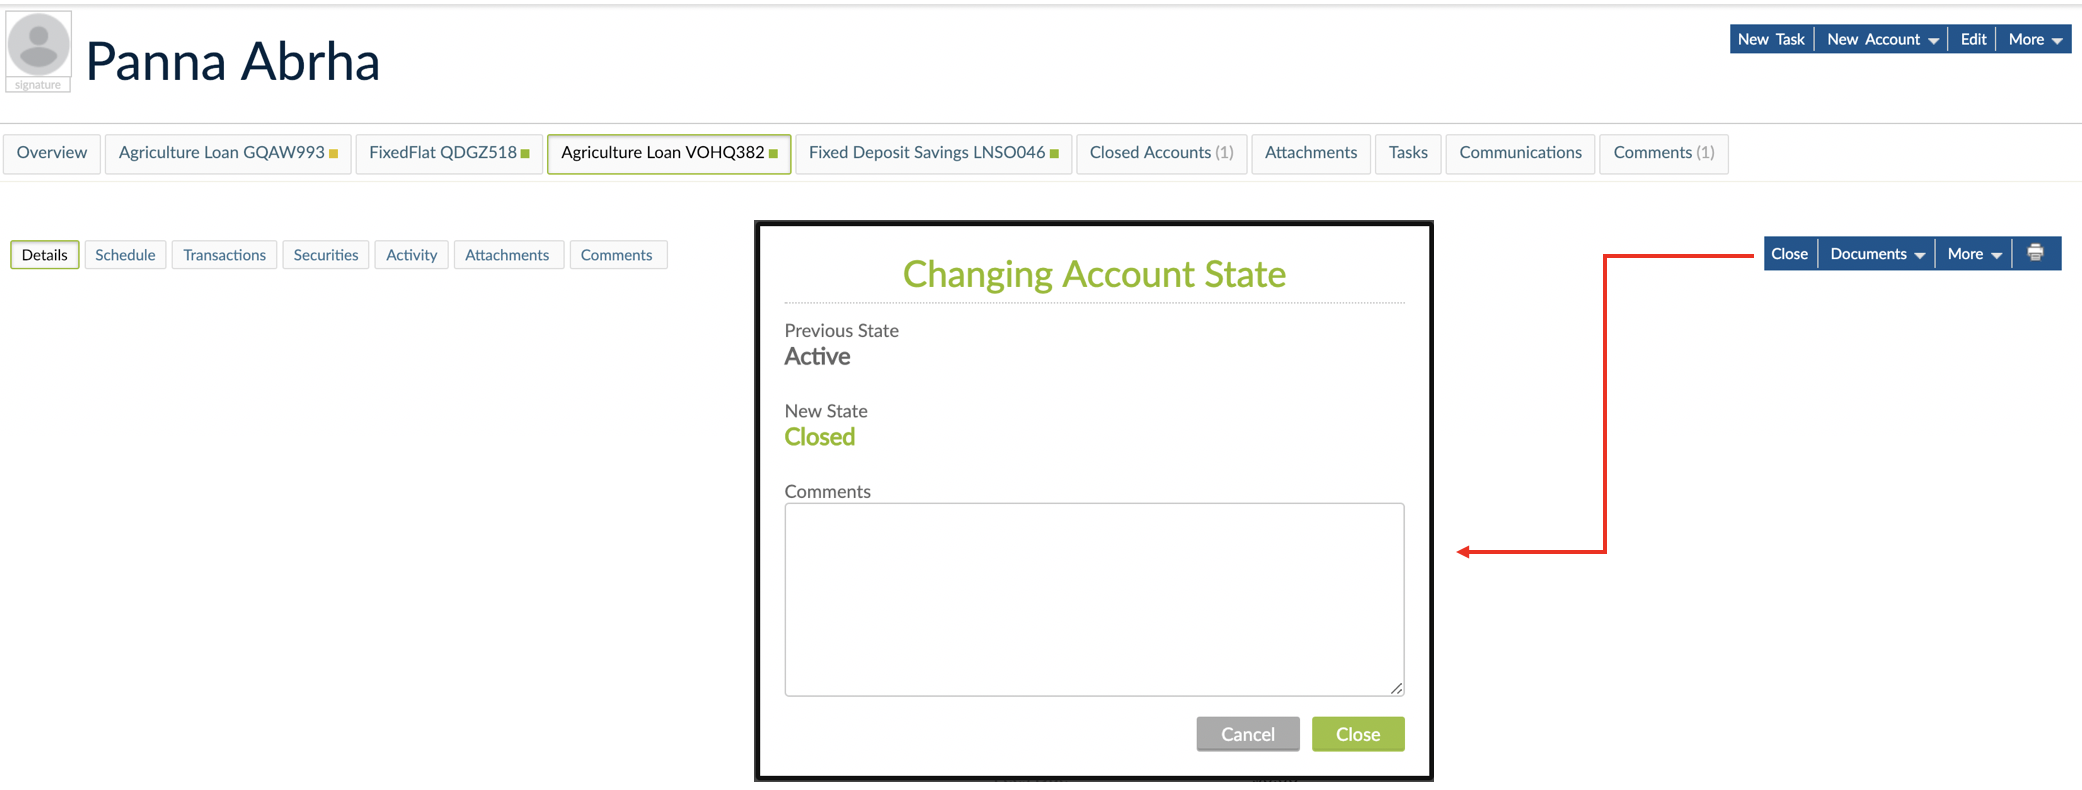 Closing Account State when account has all obligations met